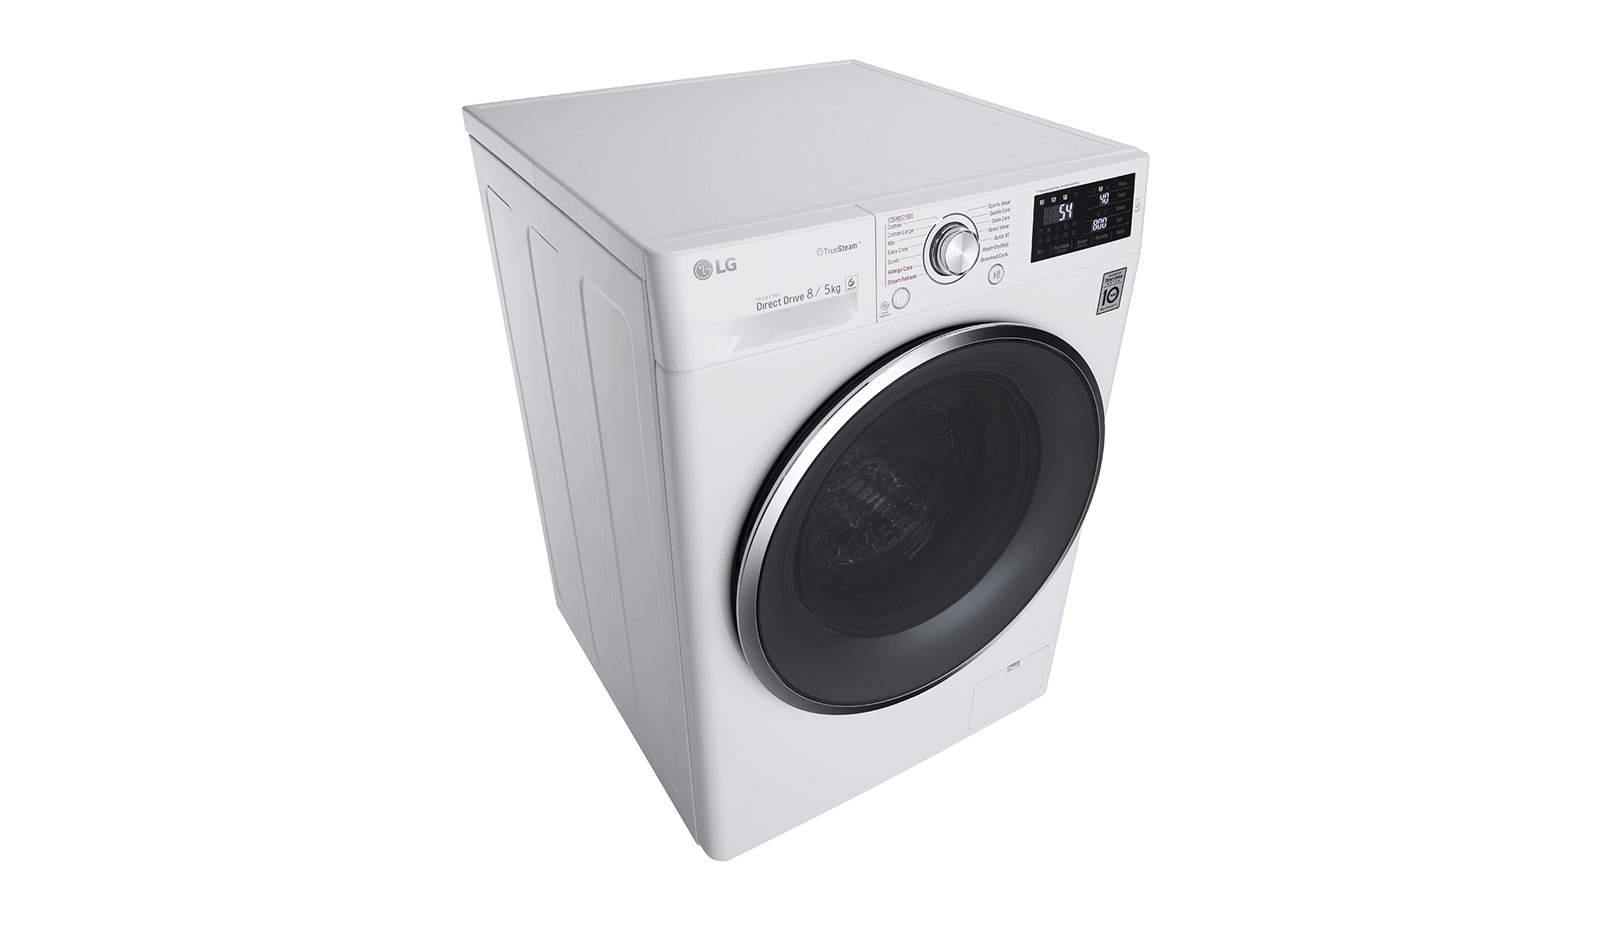 Samsung Wa13j5730ssse Top Loading Washing Machine 13 Kg Beli Harga Wa85h4000ha Se Gy Load Lg Fh4u2tdh1n Machines 8kg 5kg Washer Dryer With Truesteam And 6 Motion